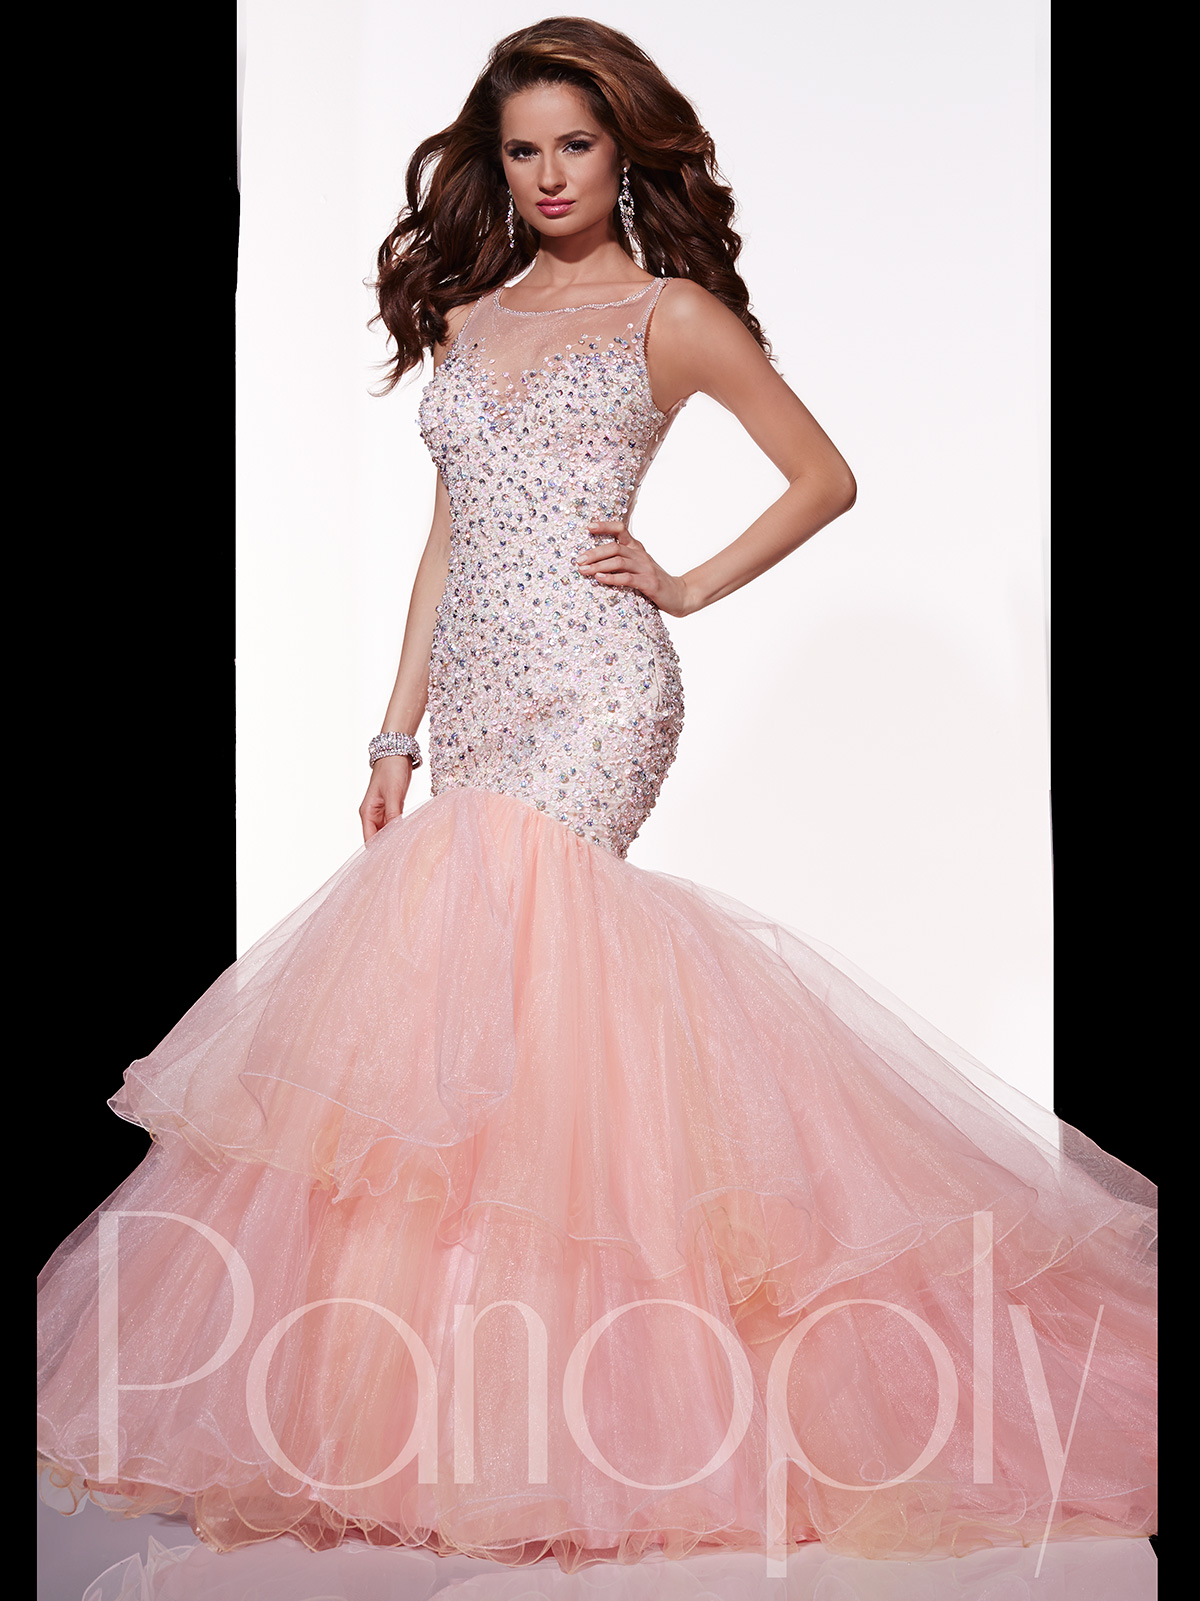 Panoply Pageant Dress 44257|PageantDesigns.com